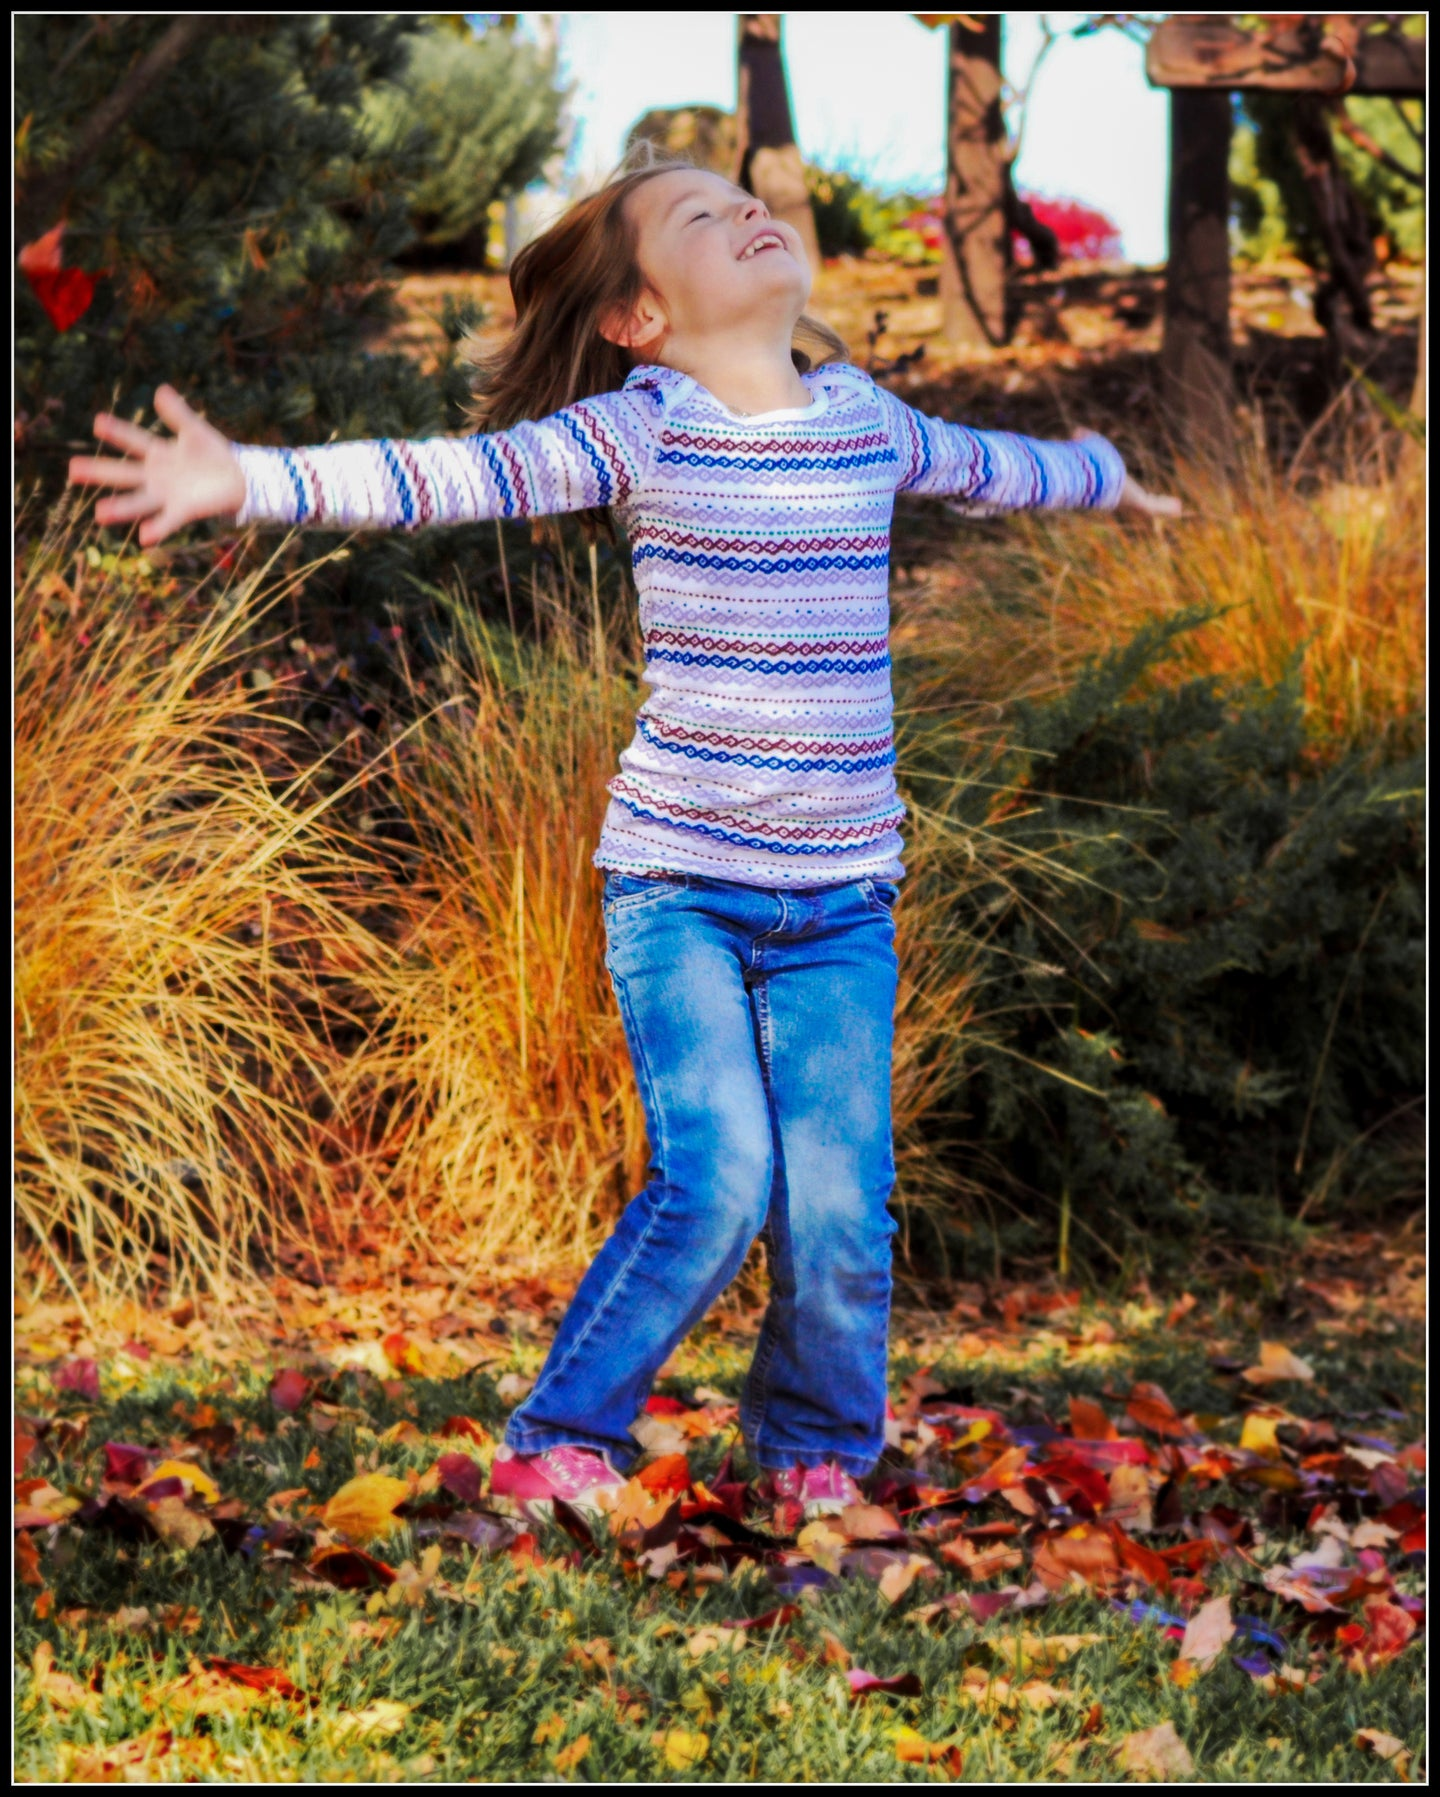 Girl Spinning in Fall Leaves - Tracy McCrackin Photography